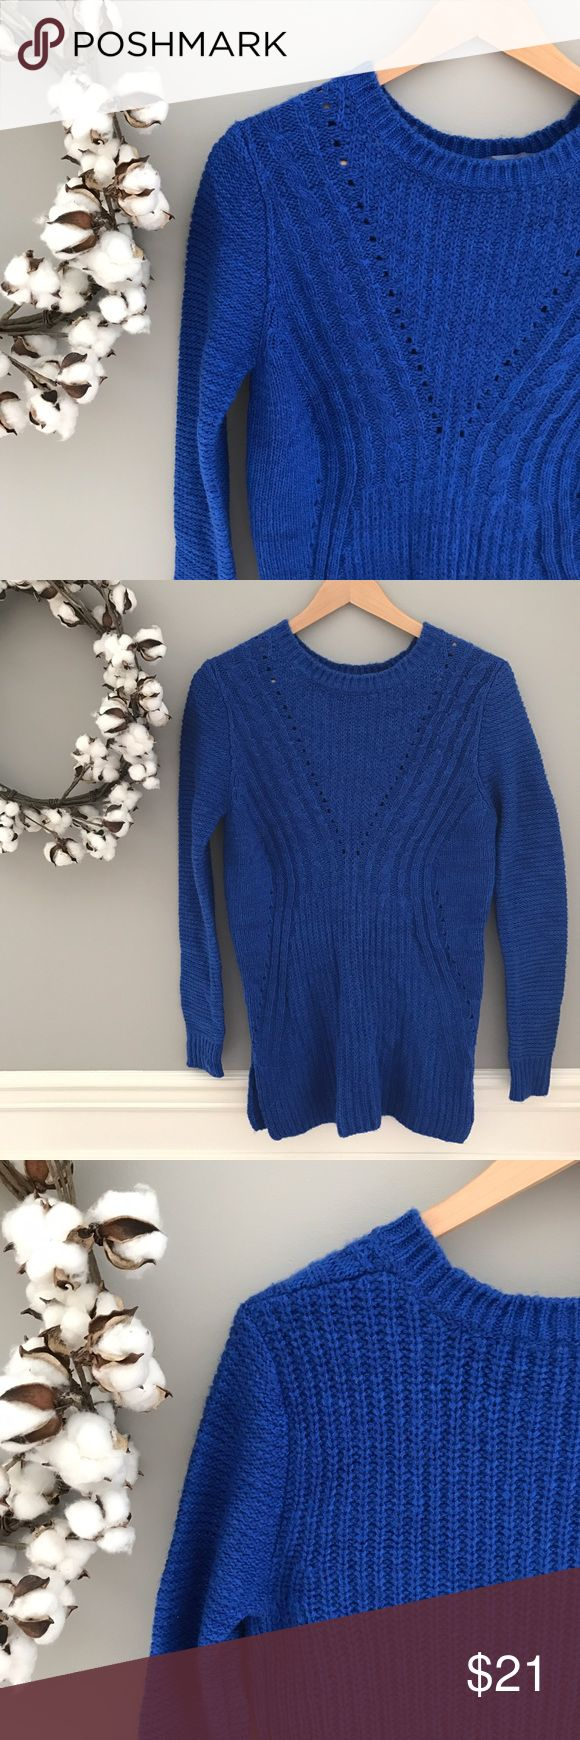 "🆕 NWOT Royal Blue Sweater Dress Size S NEW without tags-- gorgeous royal blue color (did you know that royal blue is the universally flattering tone?) ▫️ acrylic / nylon blend▫️slimming hourglass cable stitching ▫️different pattern on the sleeves + back ▫️full length sleeves ▫️crew neck ▫️ peek-hole detailing on V and sides ▫️30"" length, 5"" long split from the hem (see pic 6) ▫️bust 35"" (all measurements unstretched) ▫️Mossimo size S Dresses"